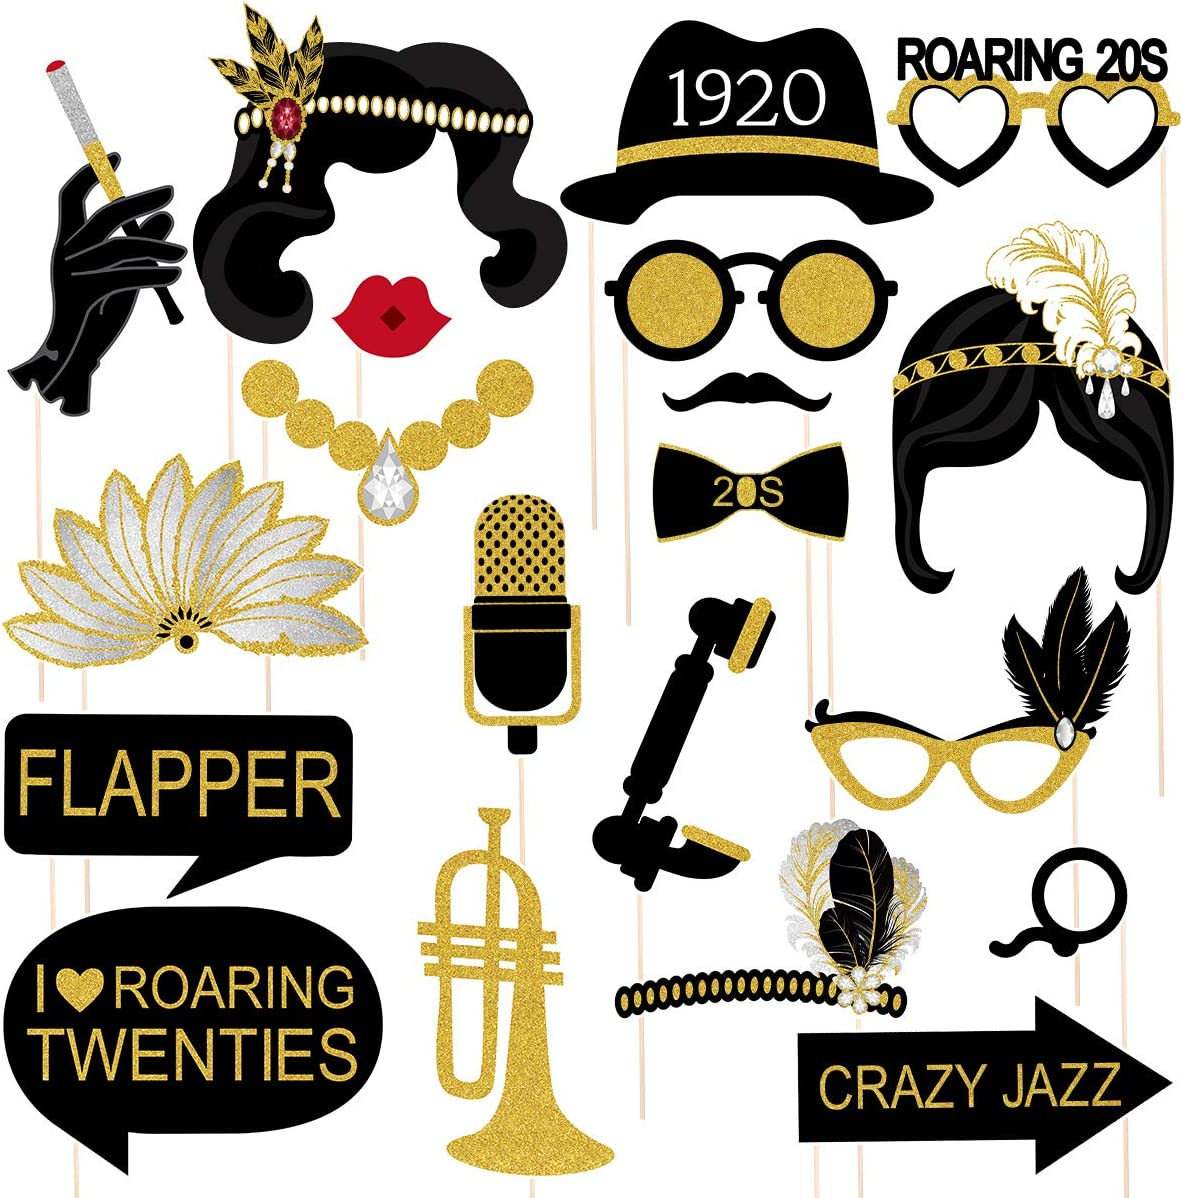 Amazon Com Amosfun 1920s Photo Booth Props 1920s Party Wedding Photo Booth Backdrop Decorations Selfie Props Photo Booth Accessories Party Supplies 20pcs Home Kitchen